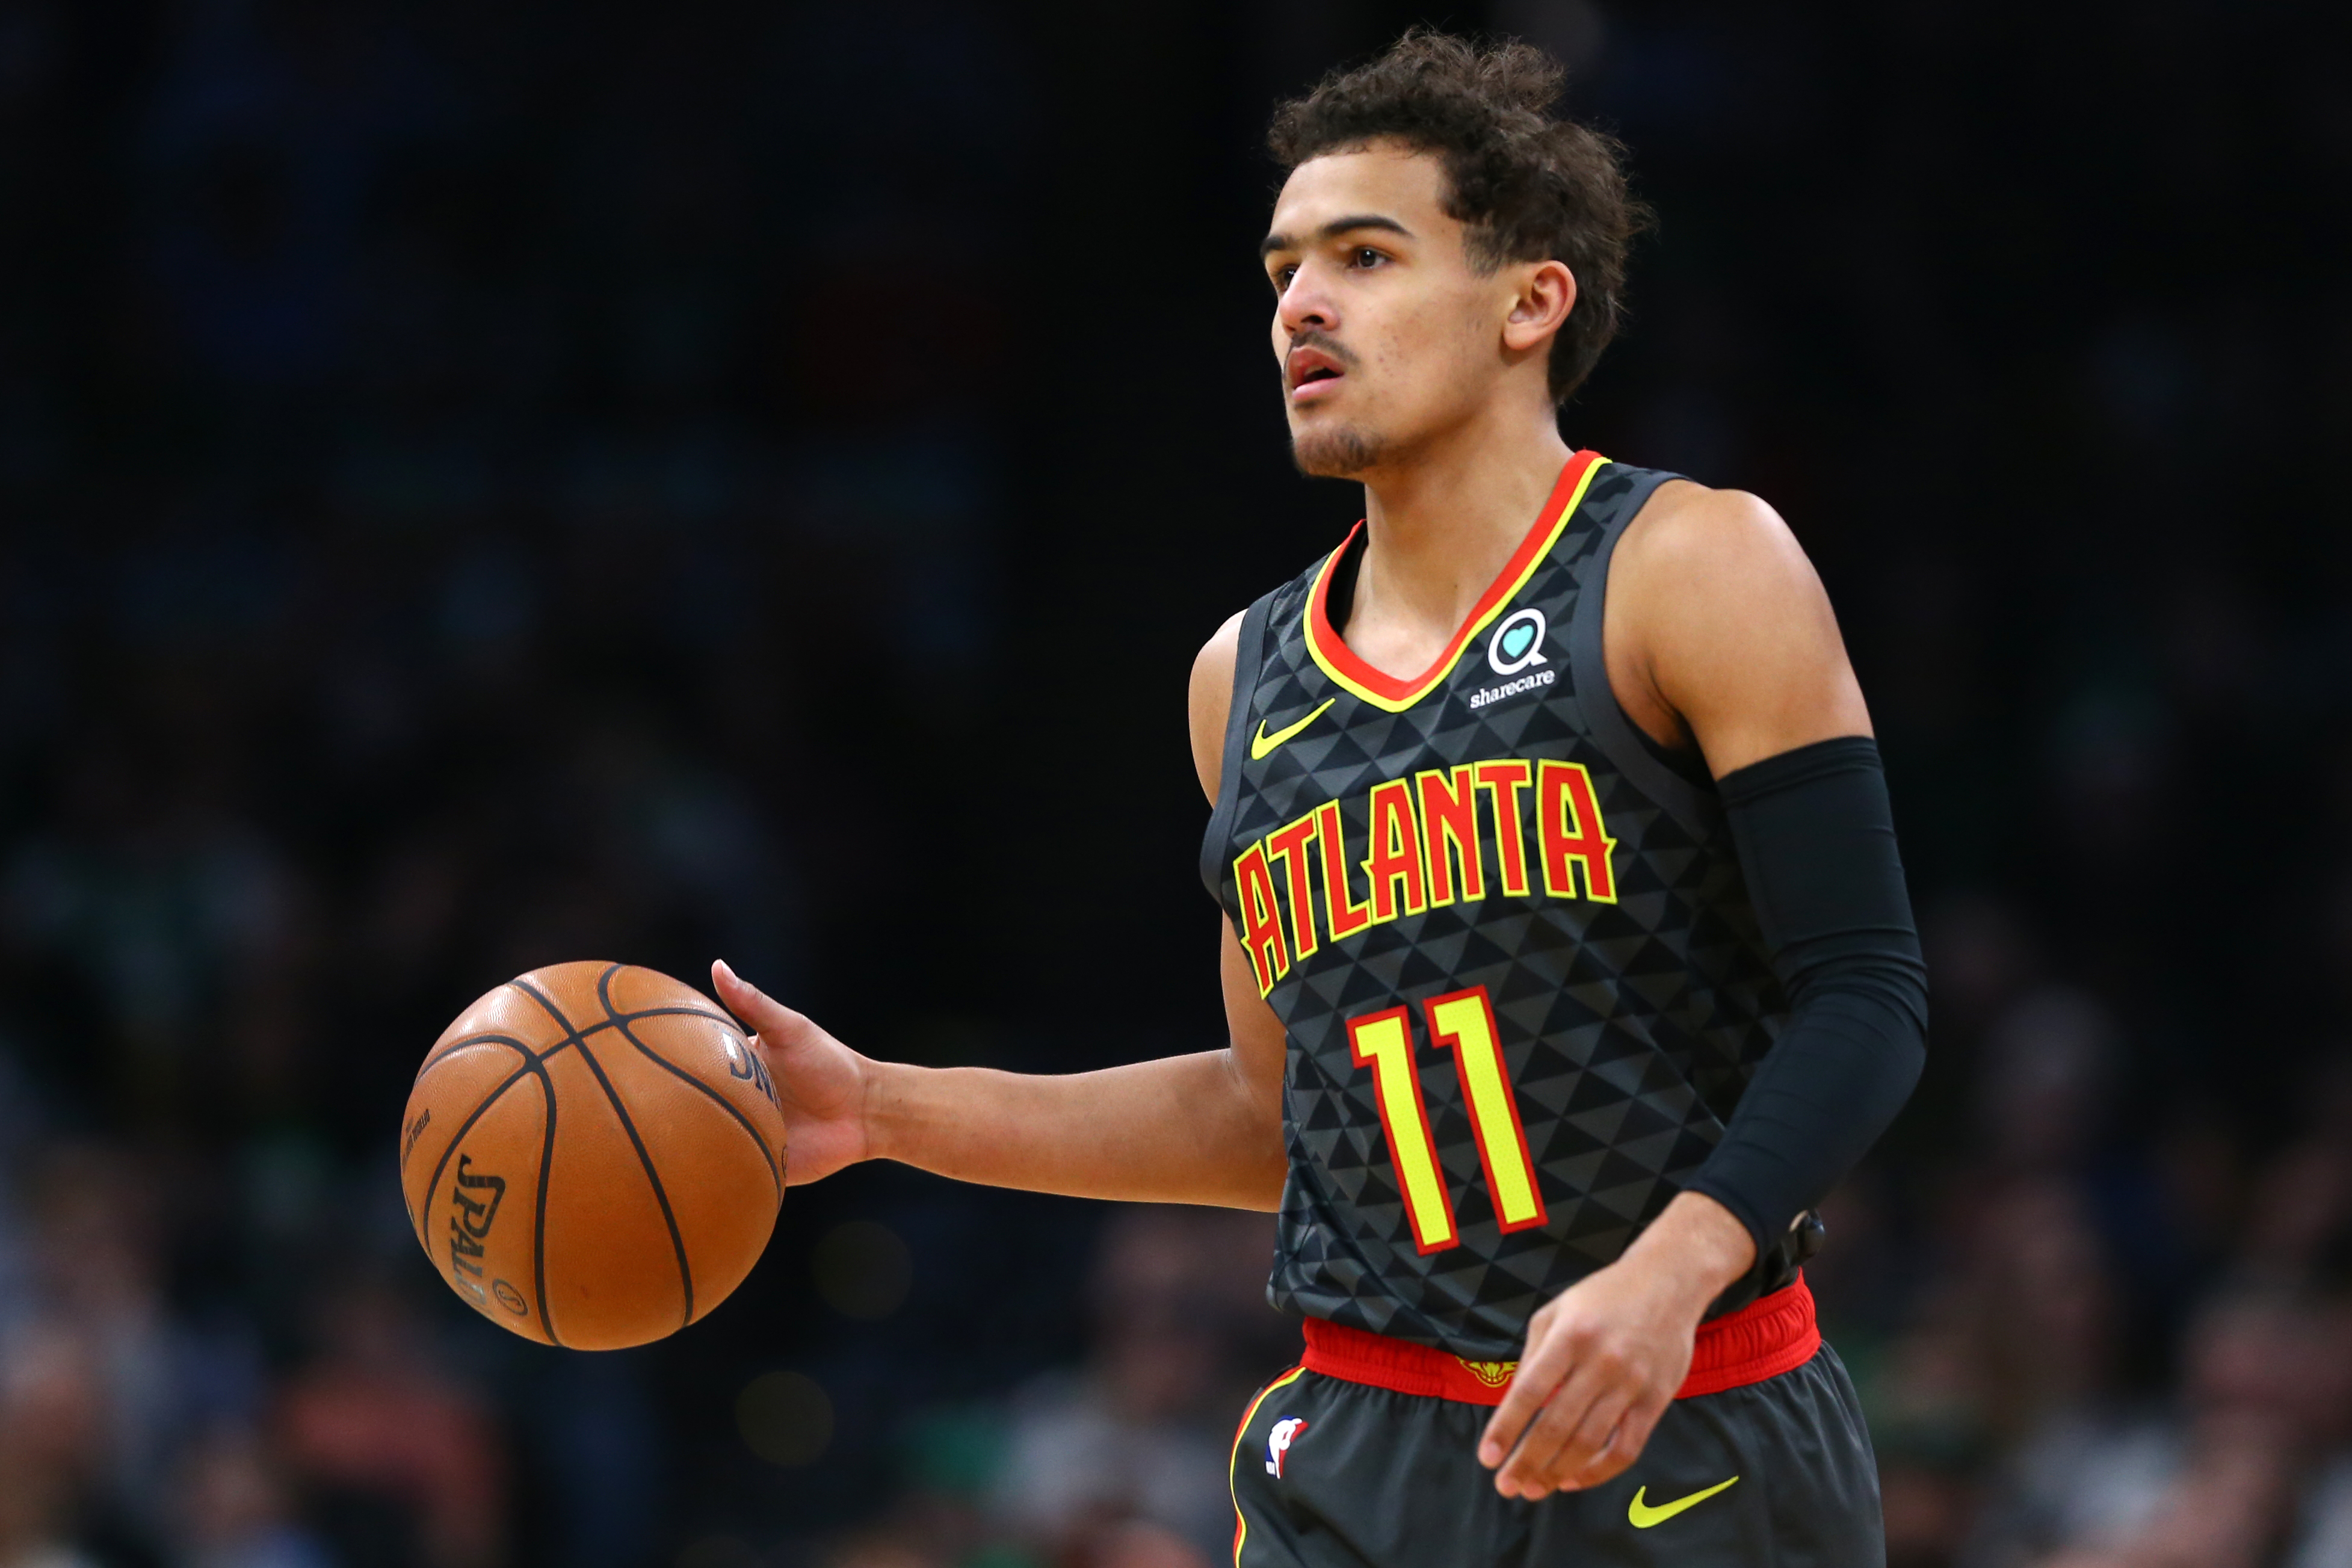 NBA's Trae Young helps eliminate $1 million in past-due medical debt for struggling families